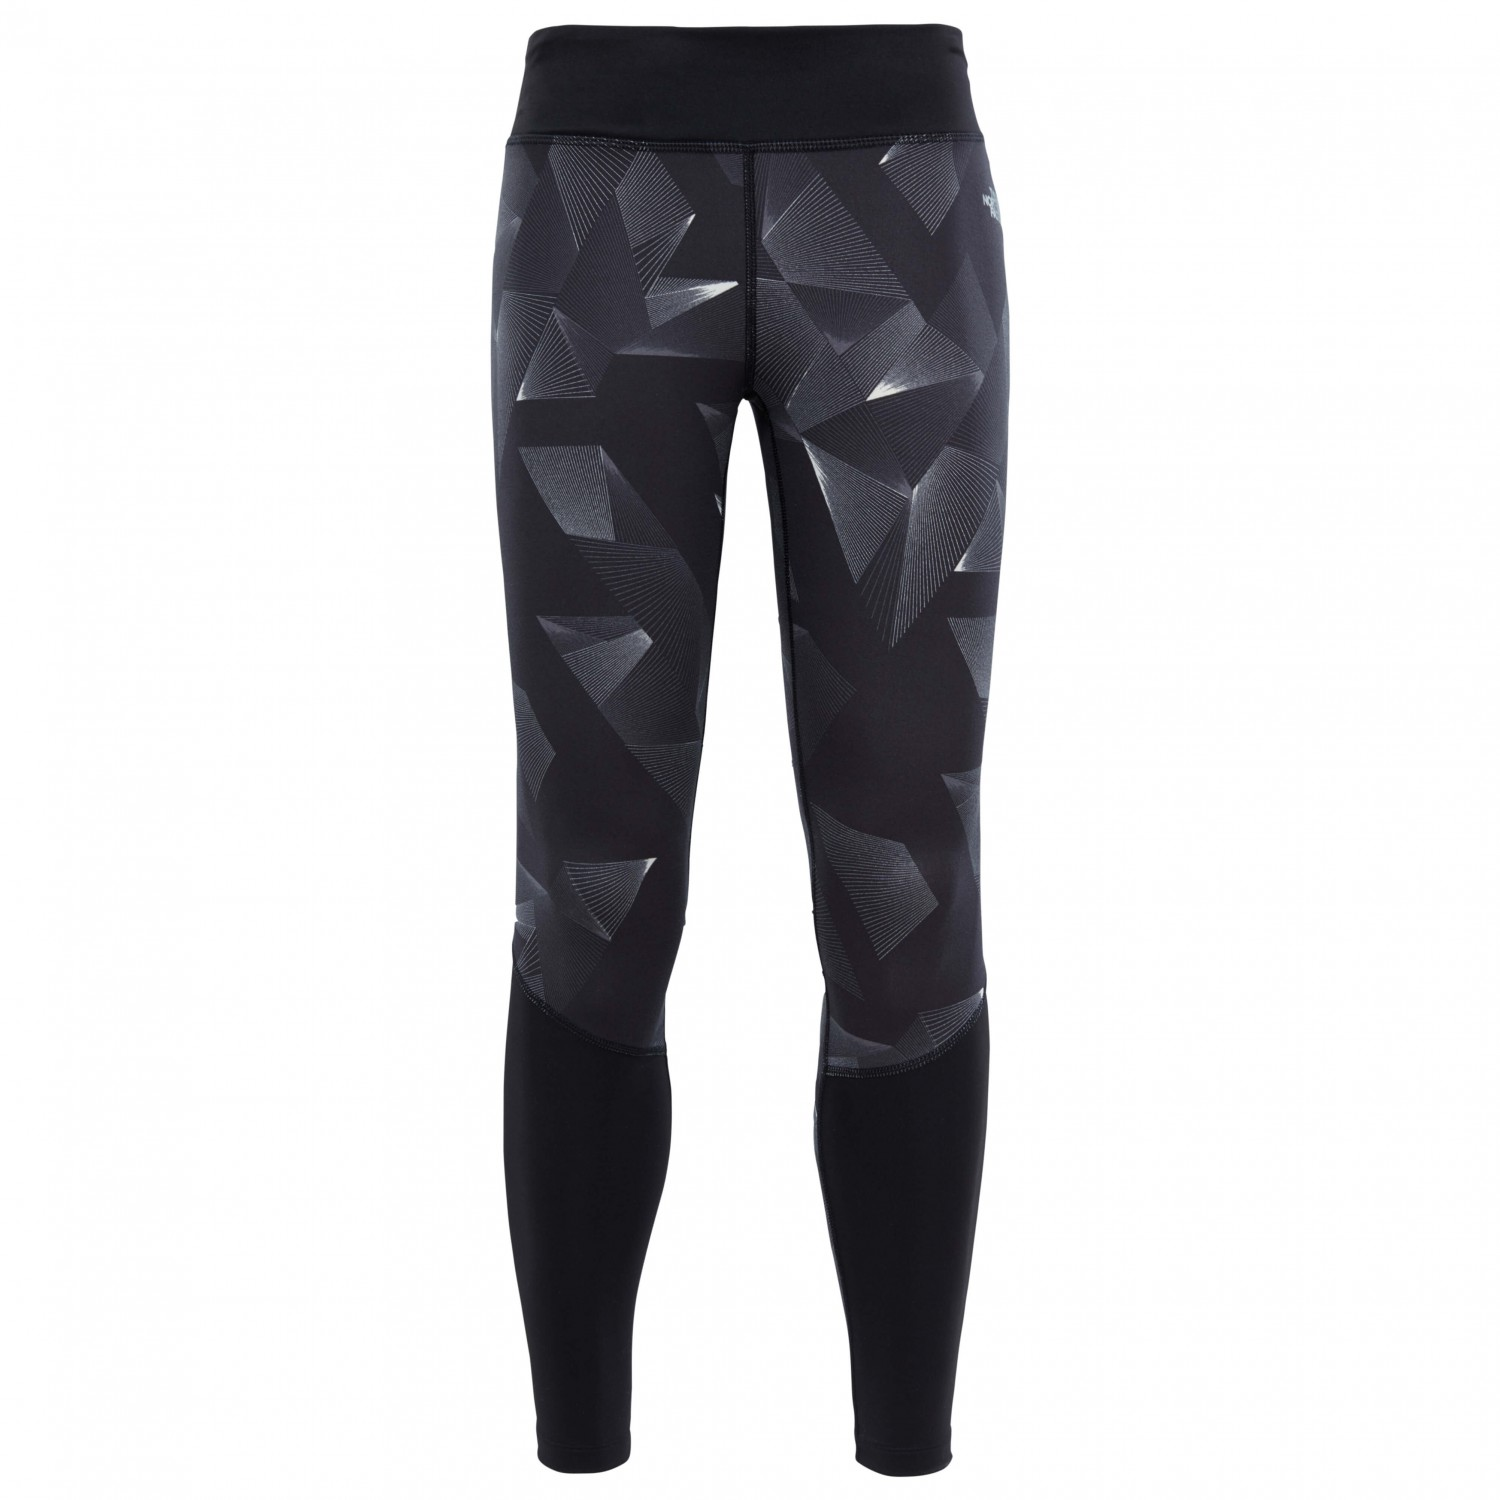 4efe525db The North Face Pulse Tight - Tracksuit Trousers Women's | Buy online ...